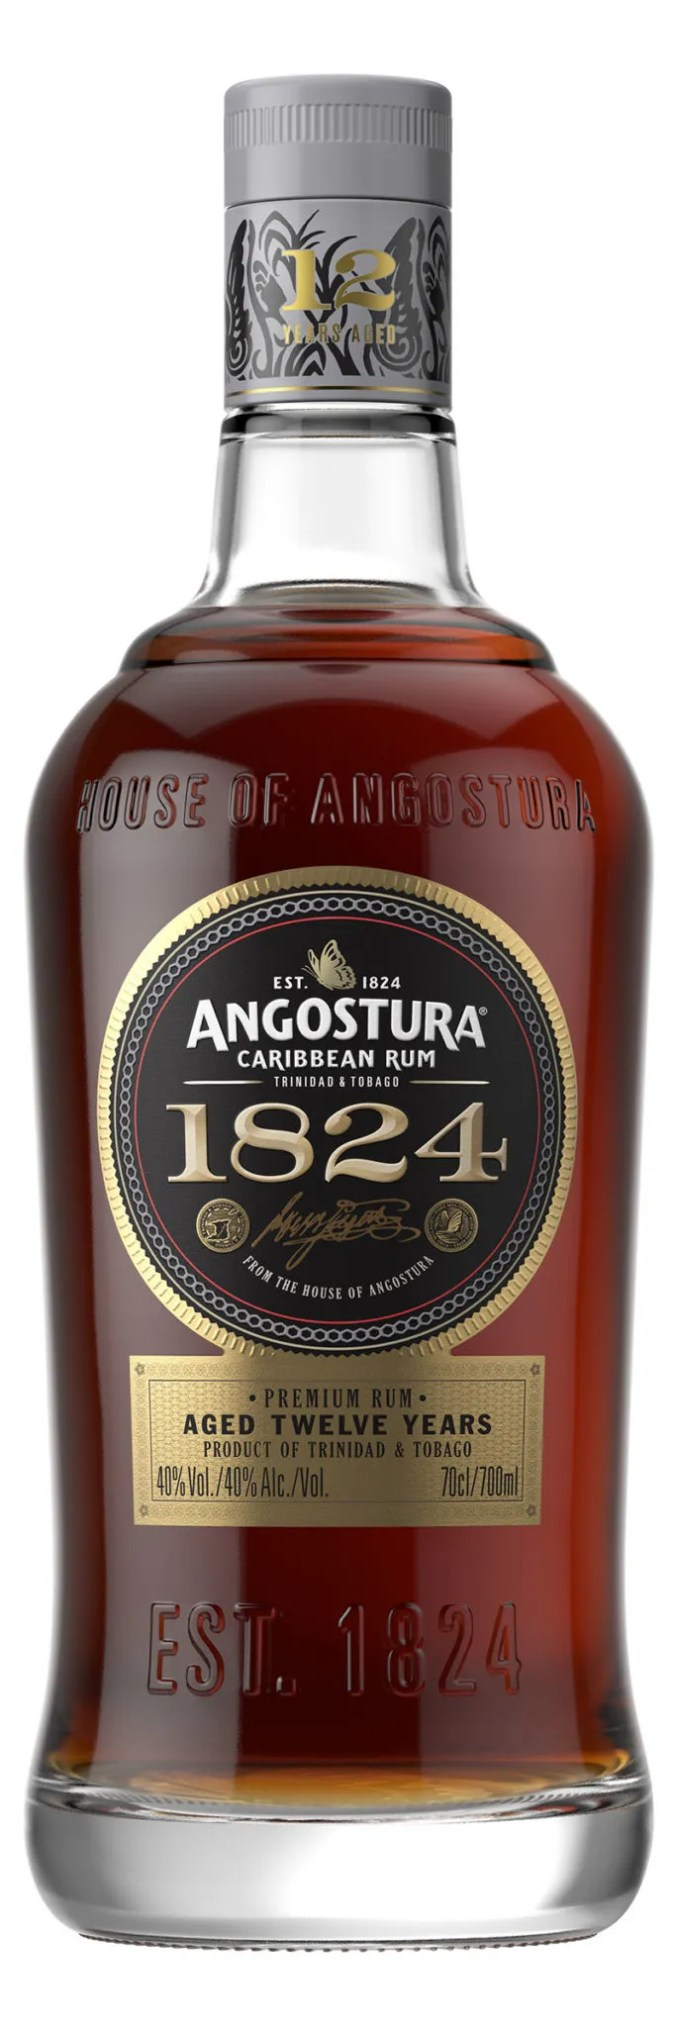 Angostura 1824 aged rum from Trinidad